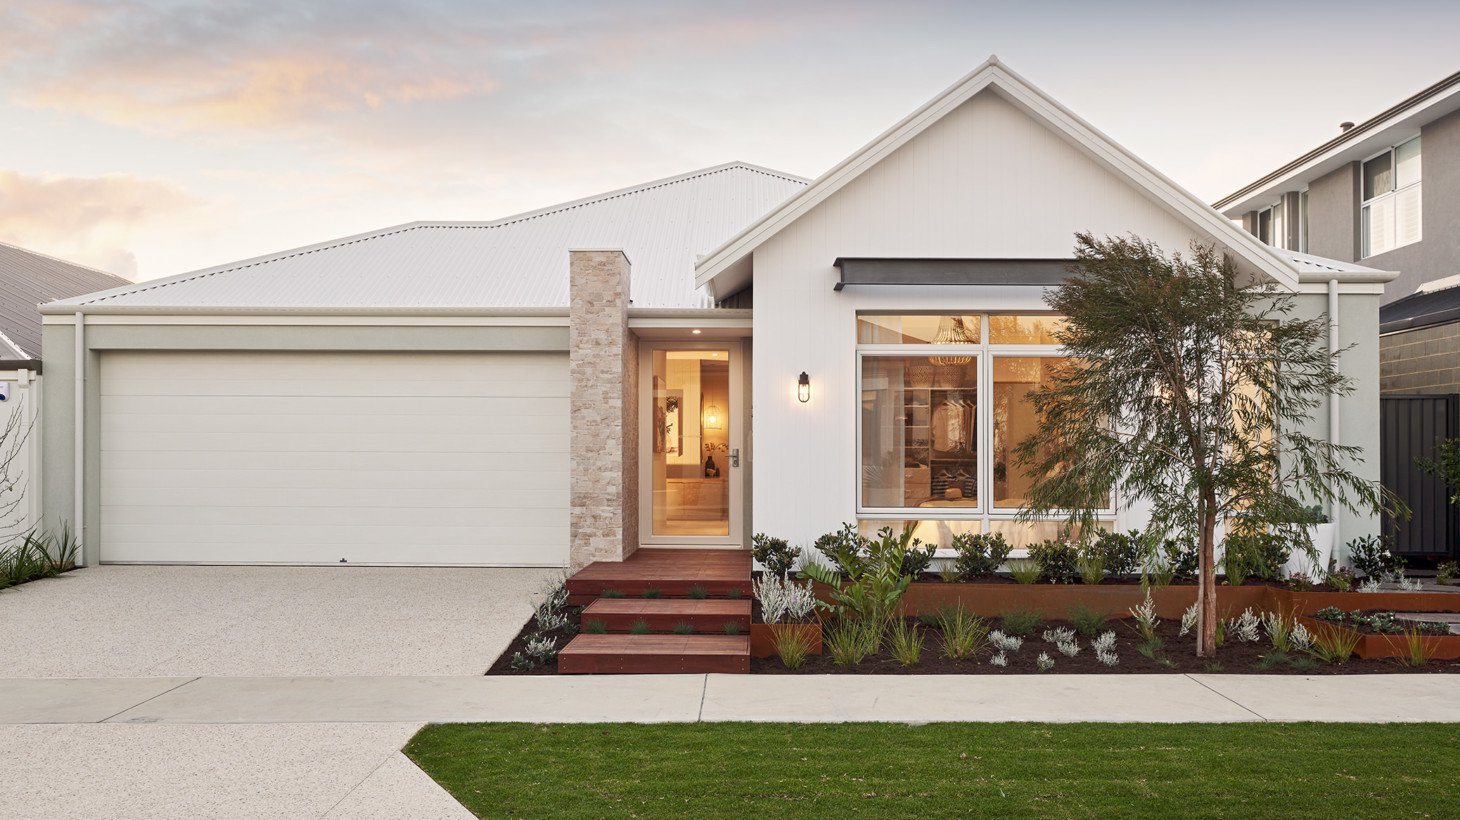 Dale Alcock Homes Perth S Trusted Home Builders Developers